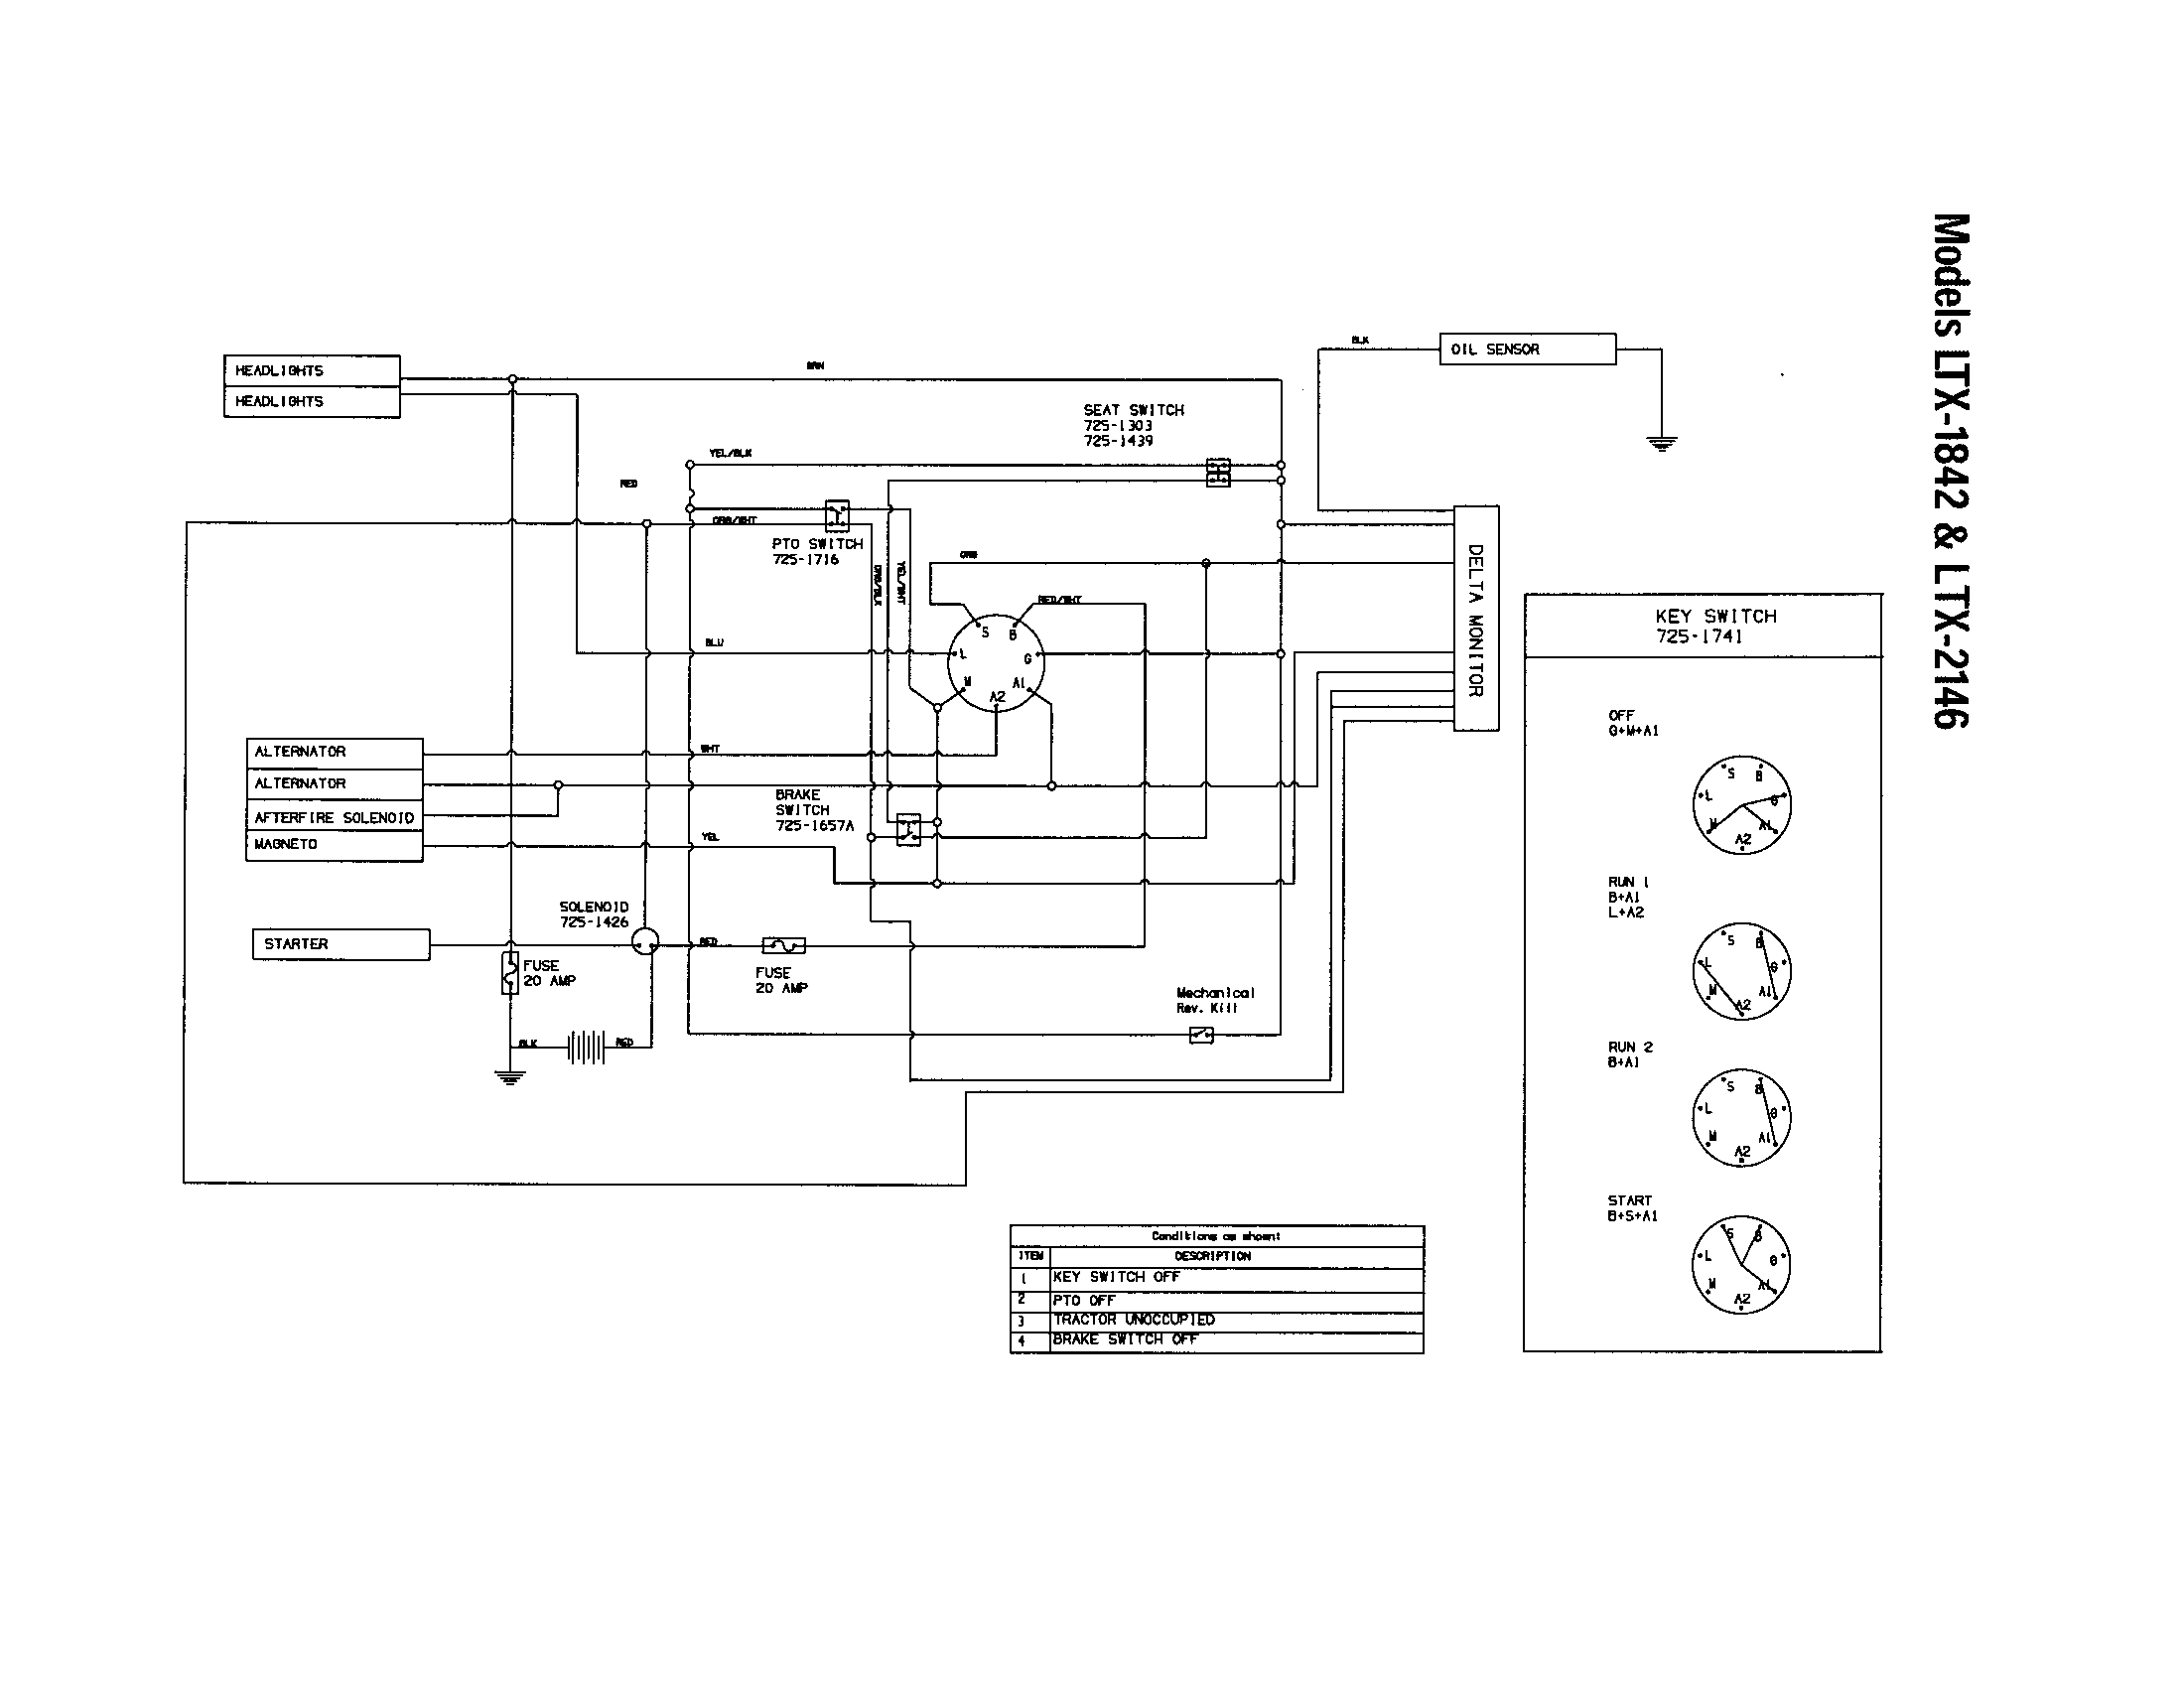 wiring diagram diagram parts list for model 13ap609g063 troybilt wiring diagram diagram parts list for model 13ap609g063 troybilt parts riding mower